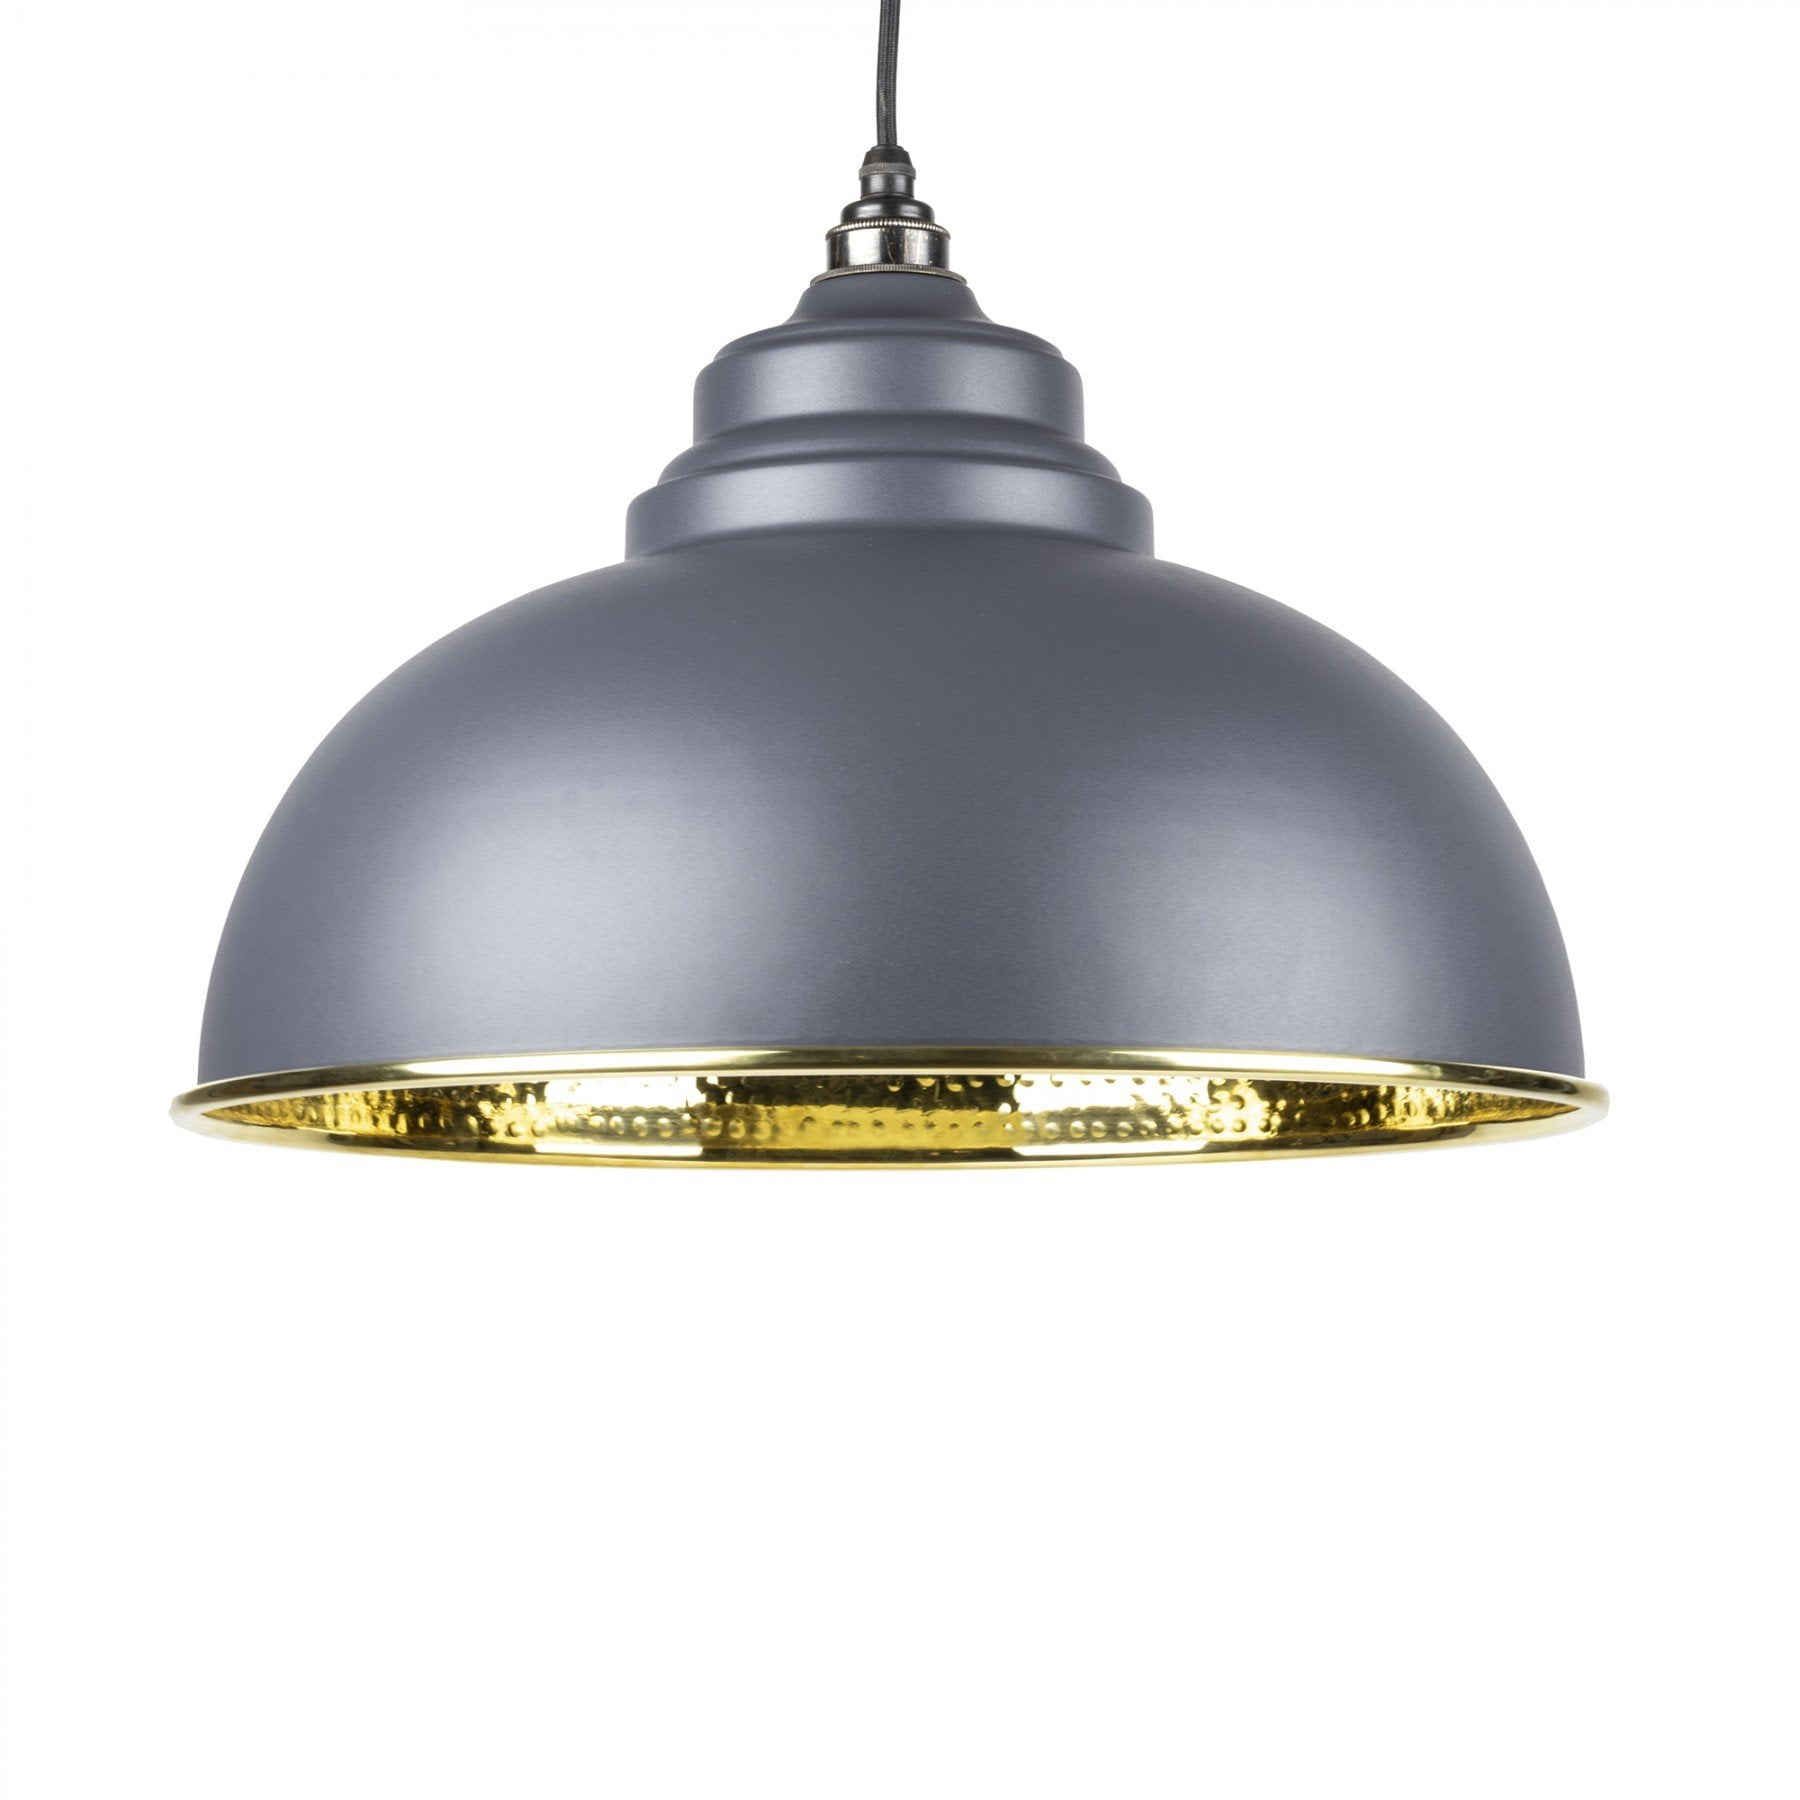 From The Anvil Dark Grey & Hammered Brass Interior Harborne Pendant - No.42 Interiors